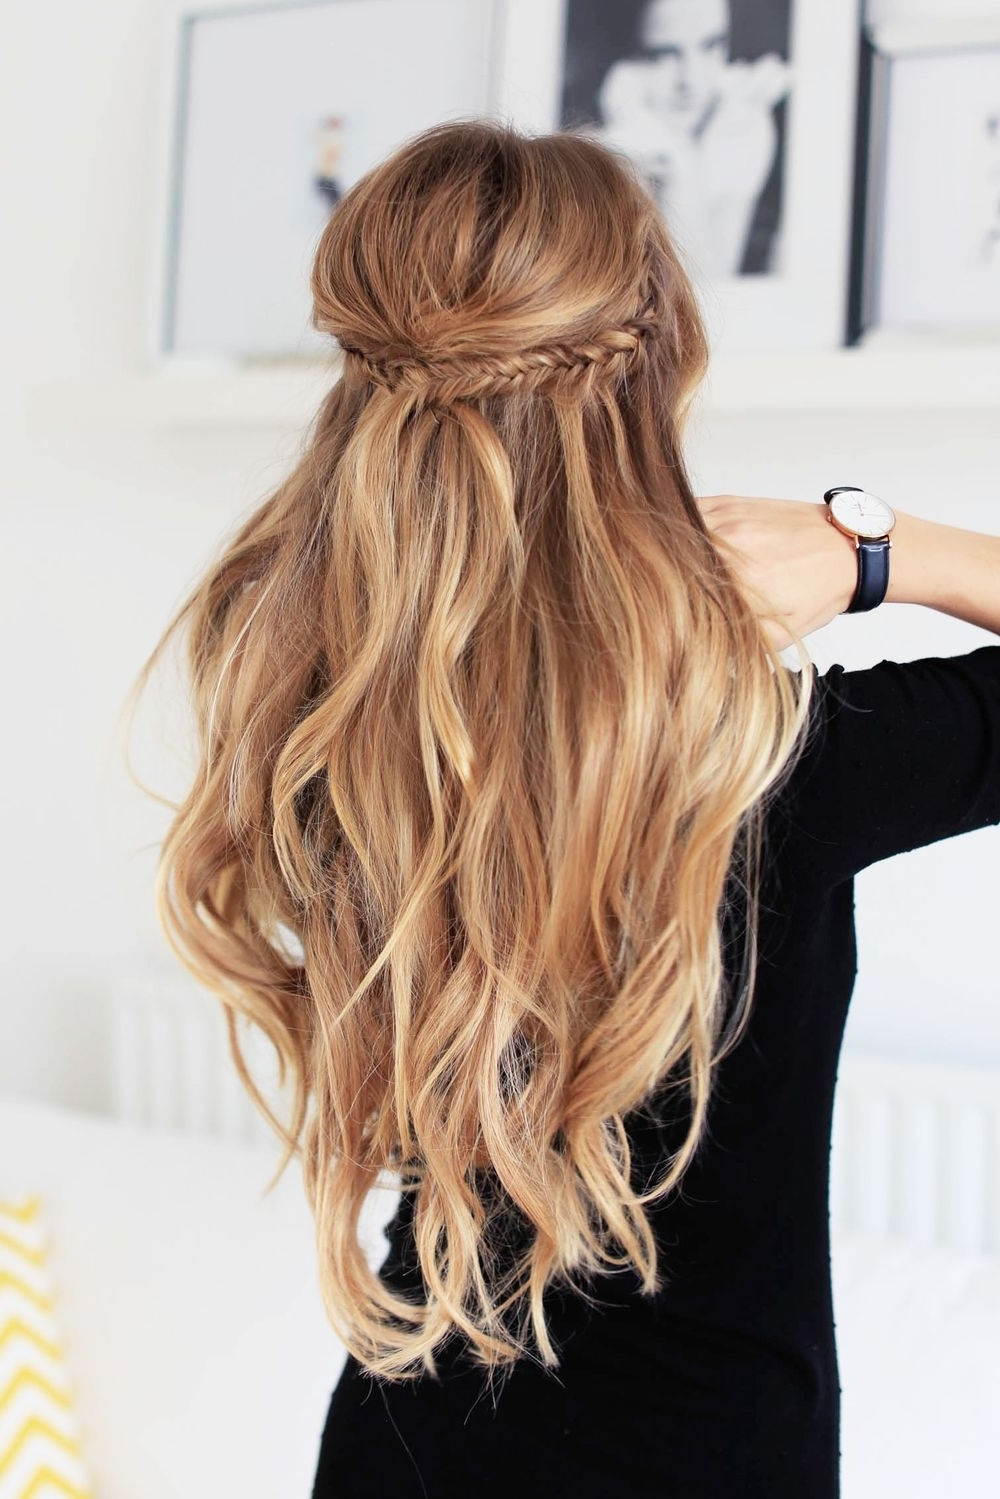 Widely Used Long Blond Ponytail Hairstyles With Bump And Sparkling Clip Intended For Make Two Small Fishtail Braids On Each Side, Then Put Them Together (View 20 of 20)